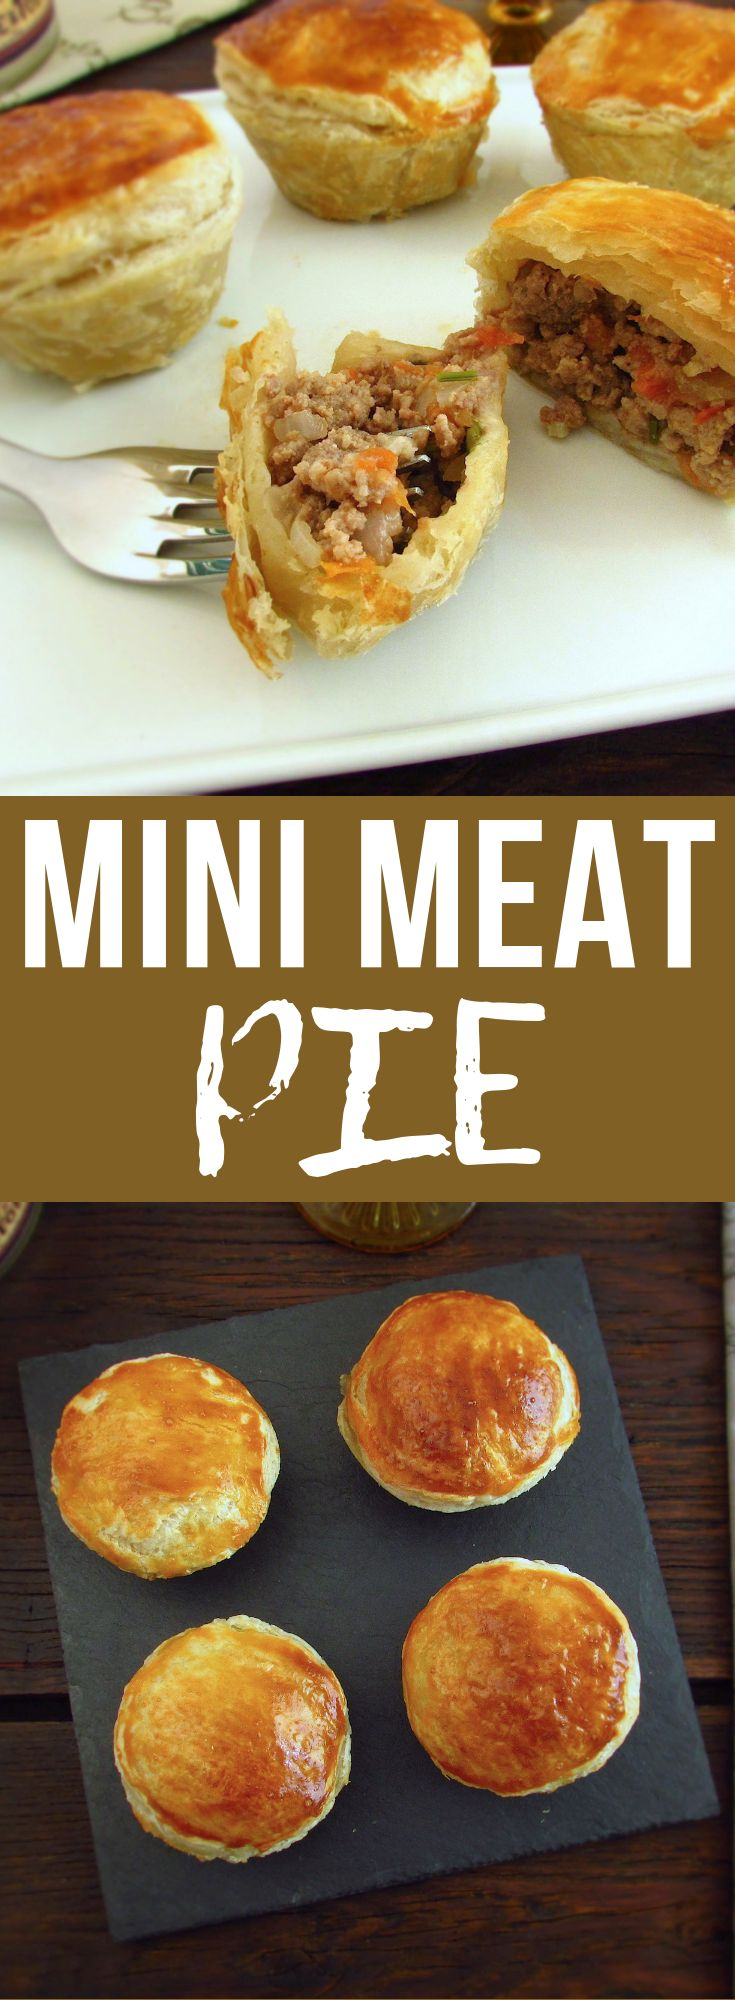 Mini meat pie | Food From Portugal